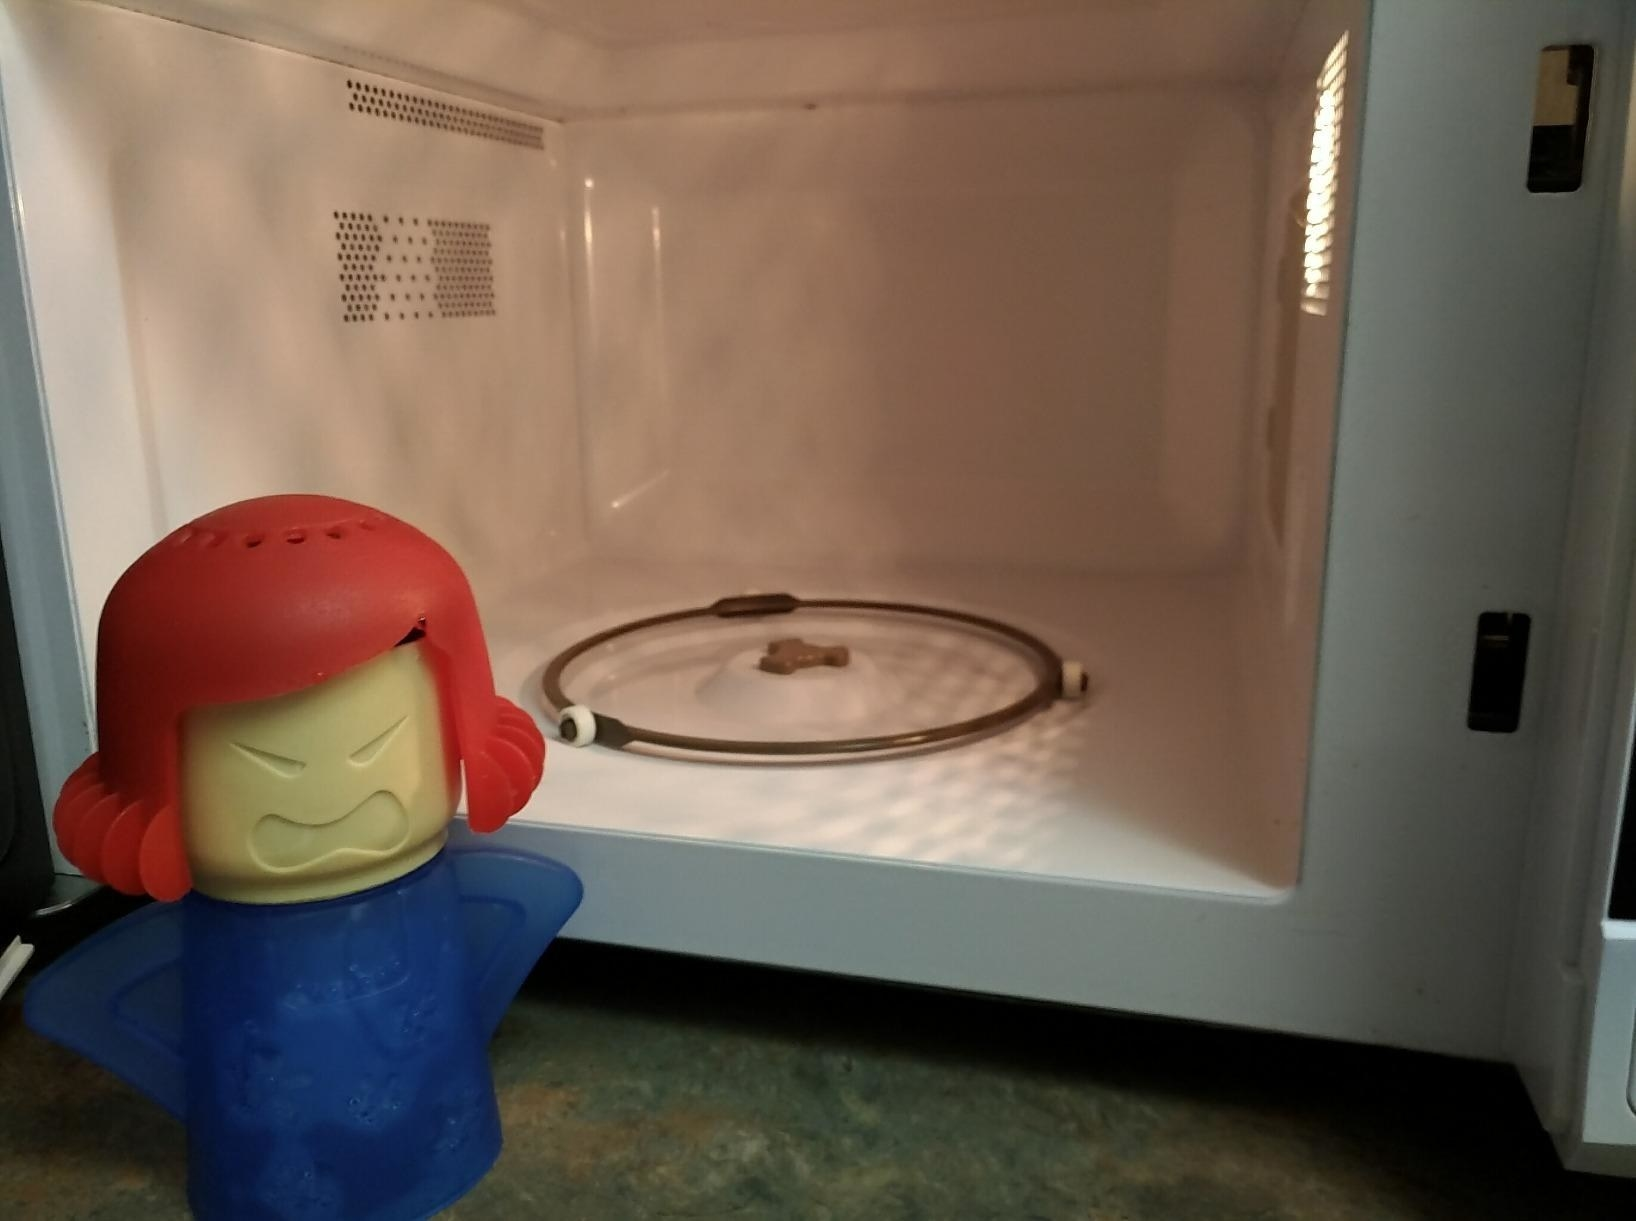 the person-shaped cleaner with vents at the top of its head next to a clean microwave